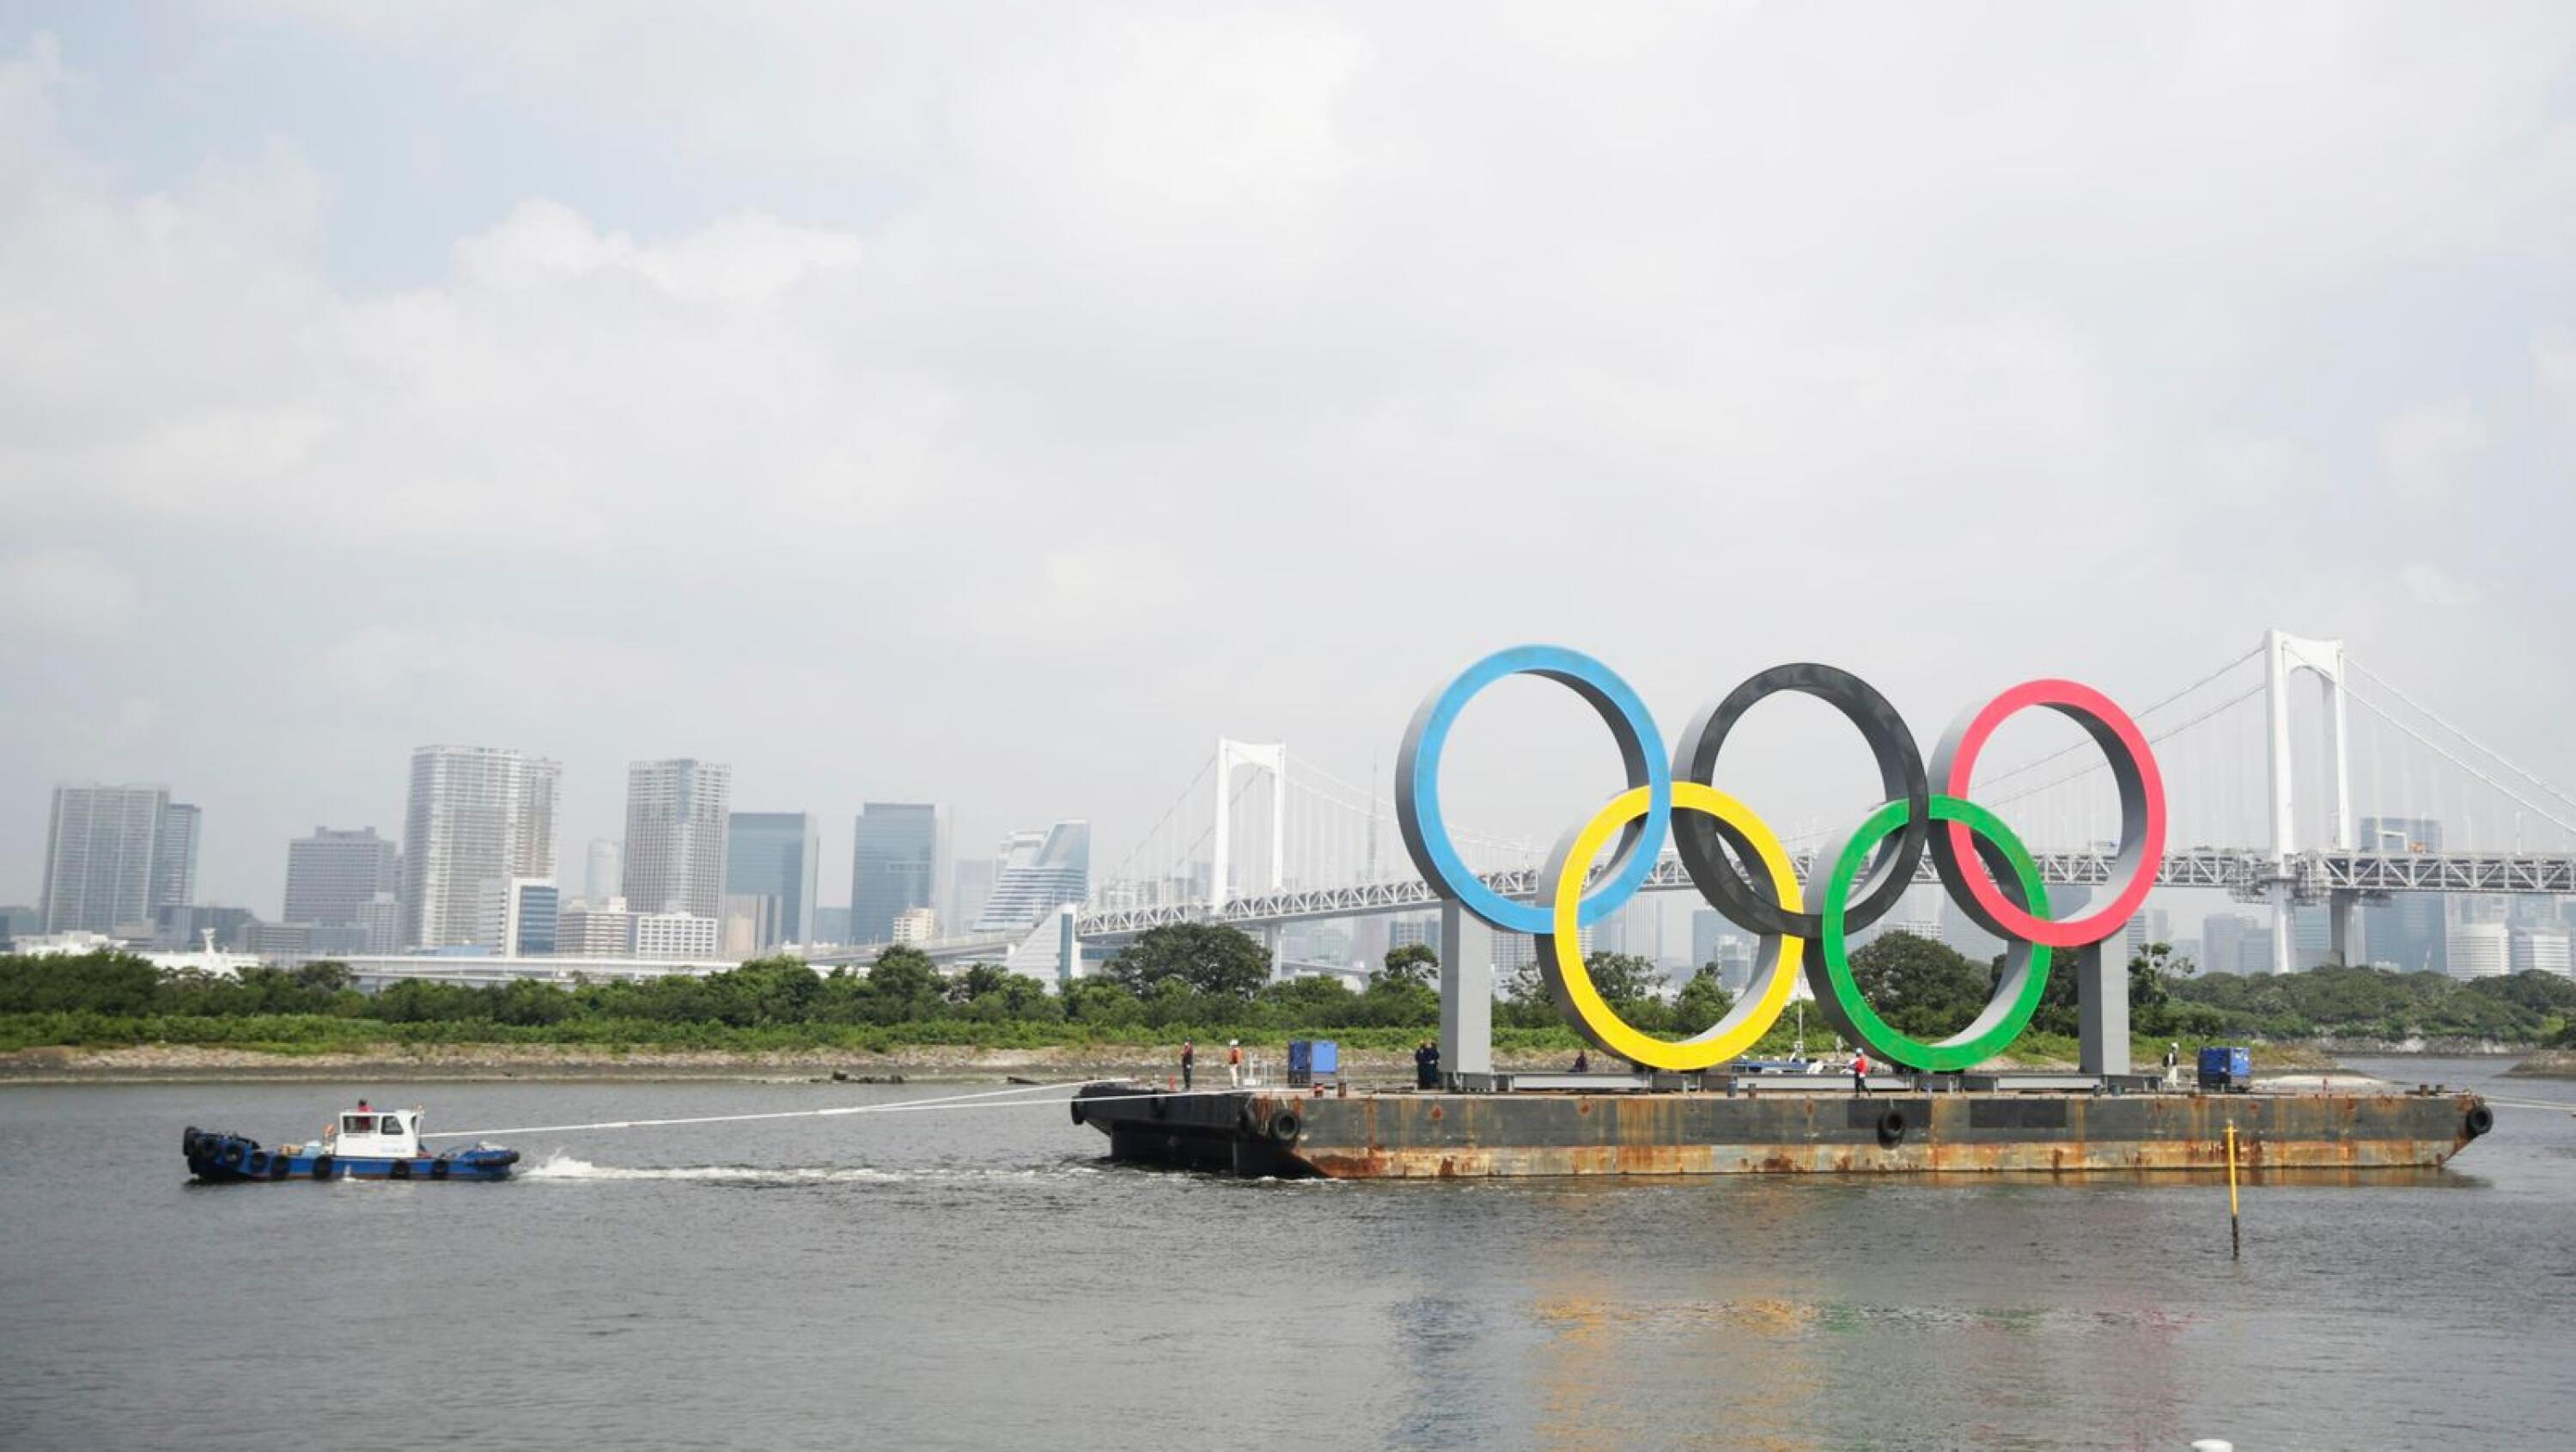 Tugboats move a symbol installed for the Olympic and Paralympic Games Tokyo 2020 on a barge gets moved away from its usual spot off the Odaiba Marine Park for a safety inspection and maintenance, in Tokyo